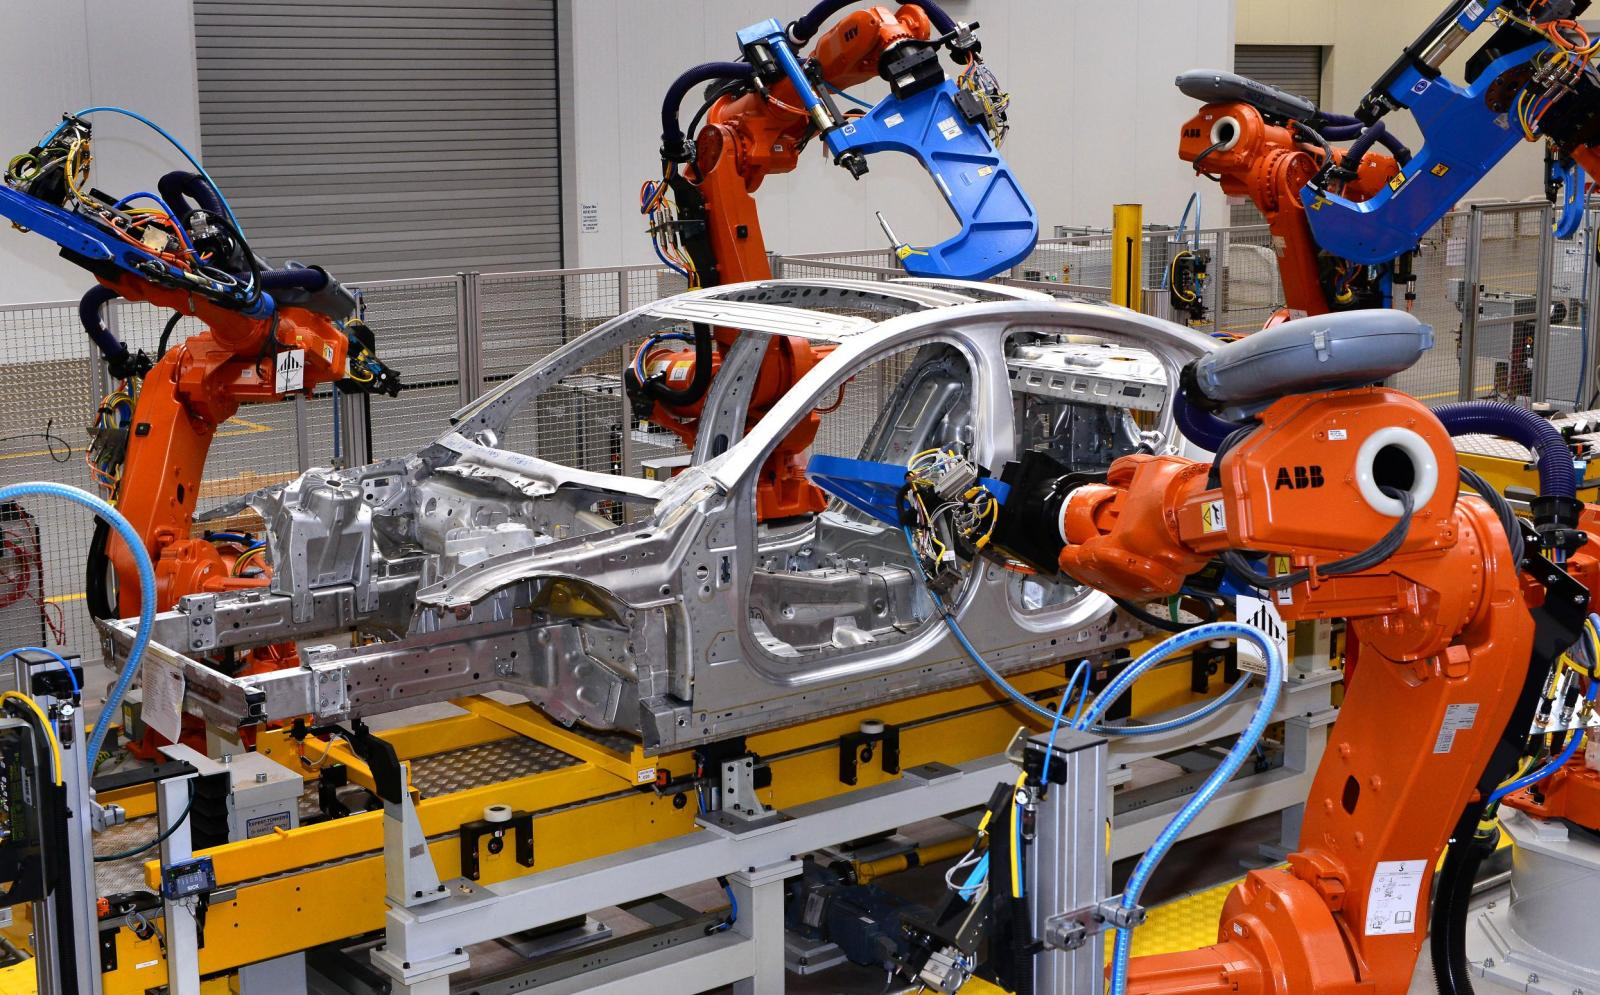 Automotive Robotics Market by Type, Component, Application, and Region – Global Forecast to 2021